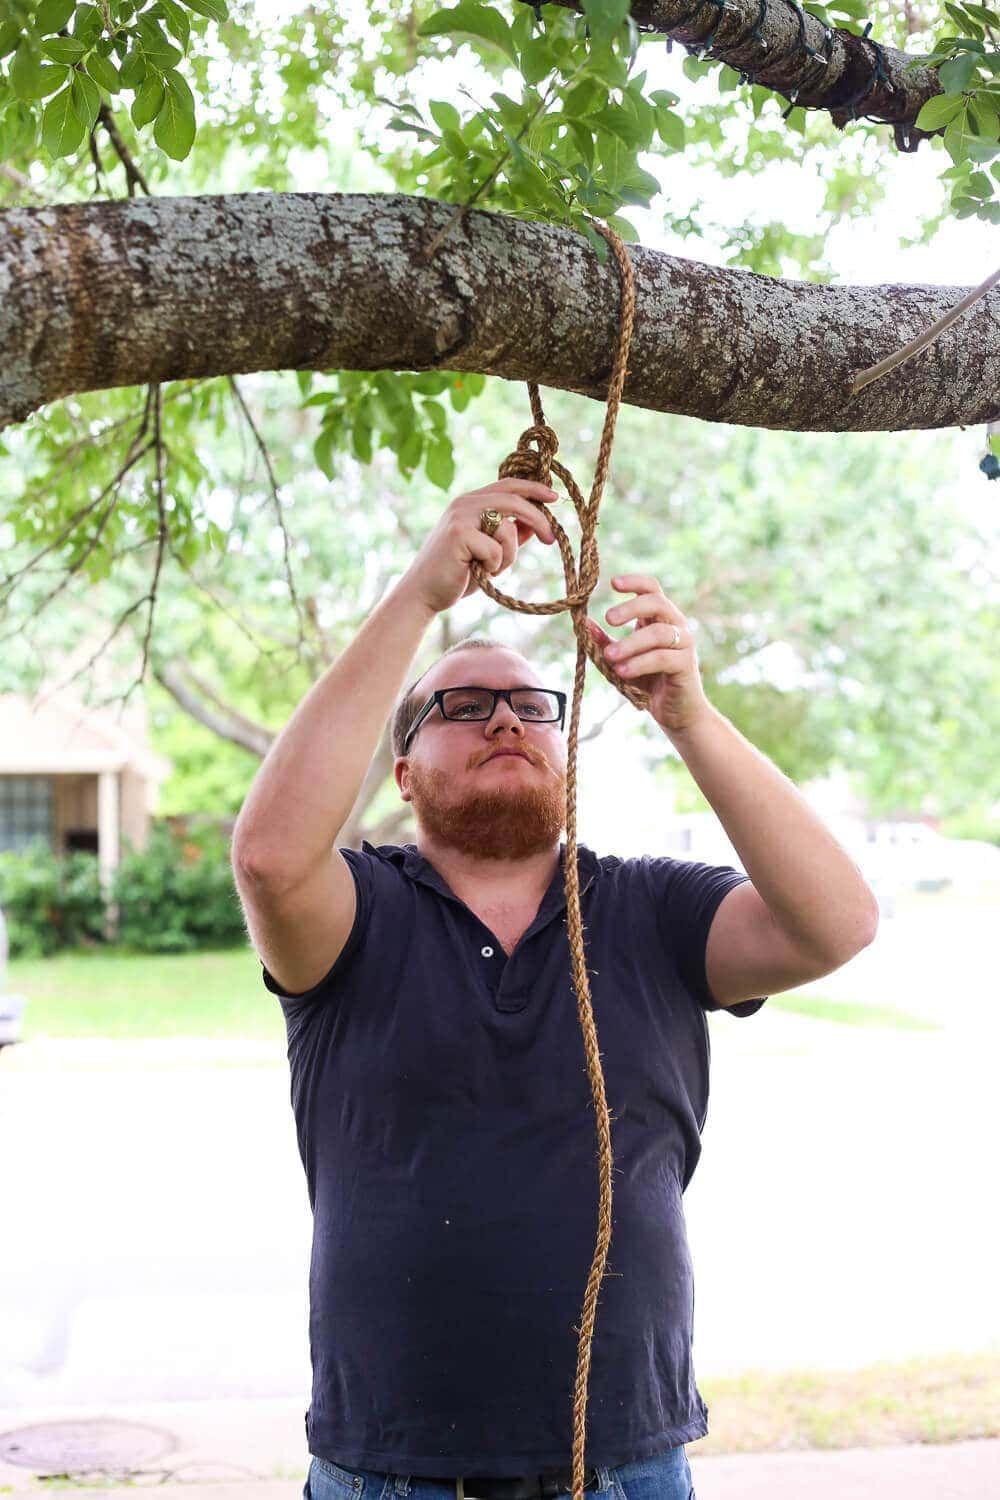 How to attach tree swing to branch